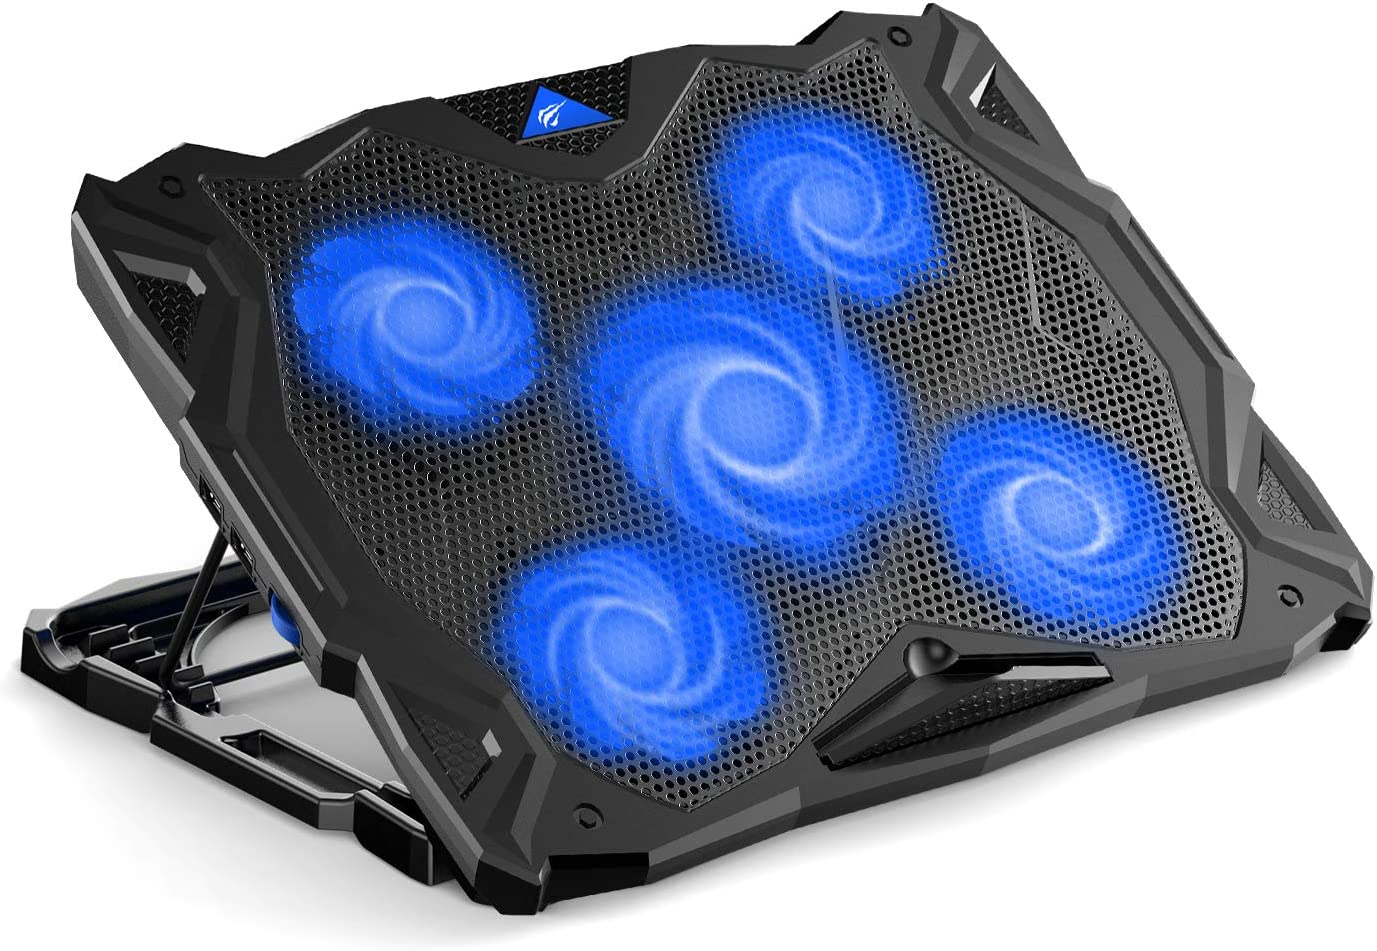 Havit Laptop Cooling Pad Computer Quiet Cooler with 5 Quiet Fans and 2 USB Ports, Portable Cooling Stand with LED Light for 14-17 Inch Laptop (Blue)